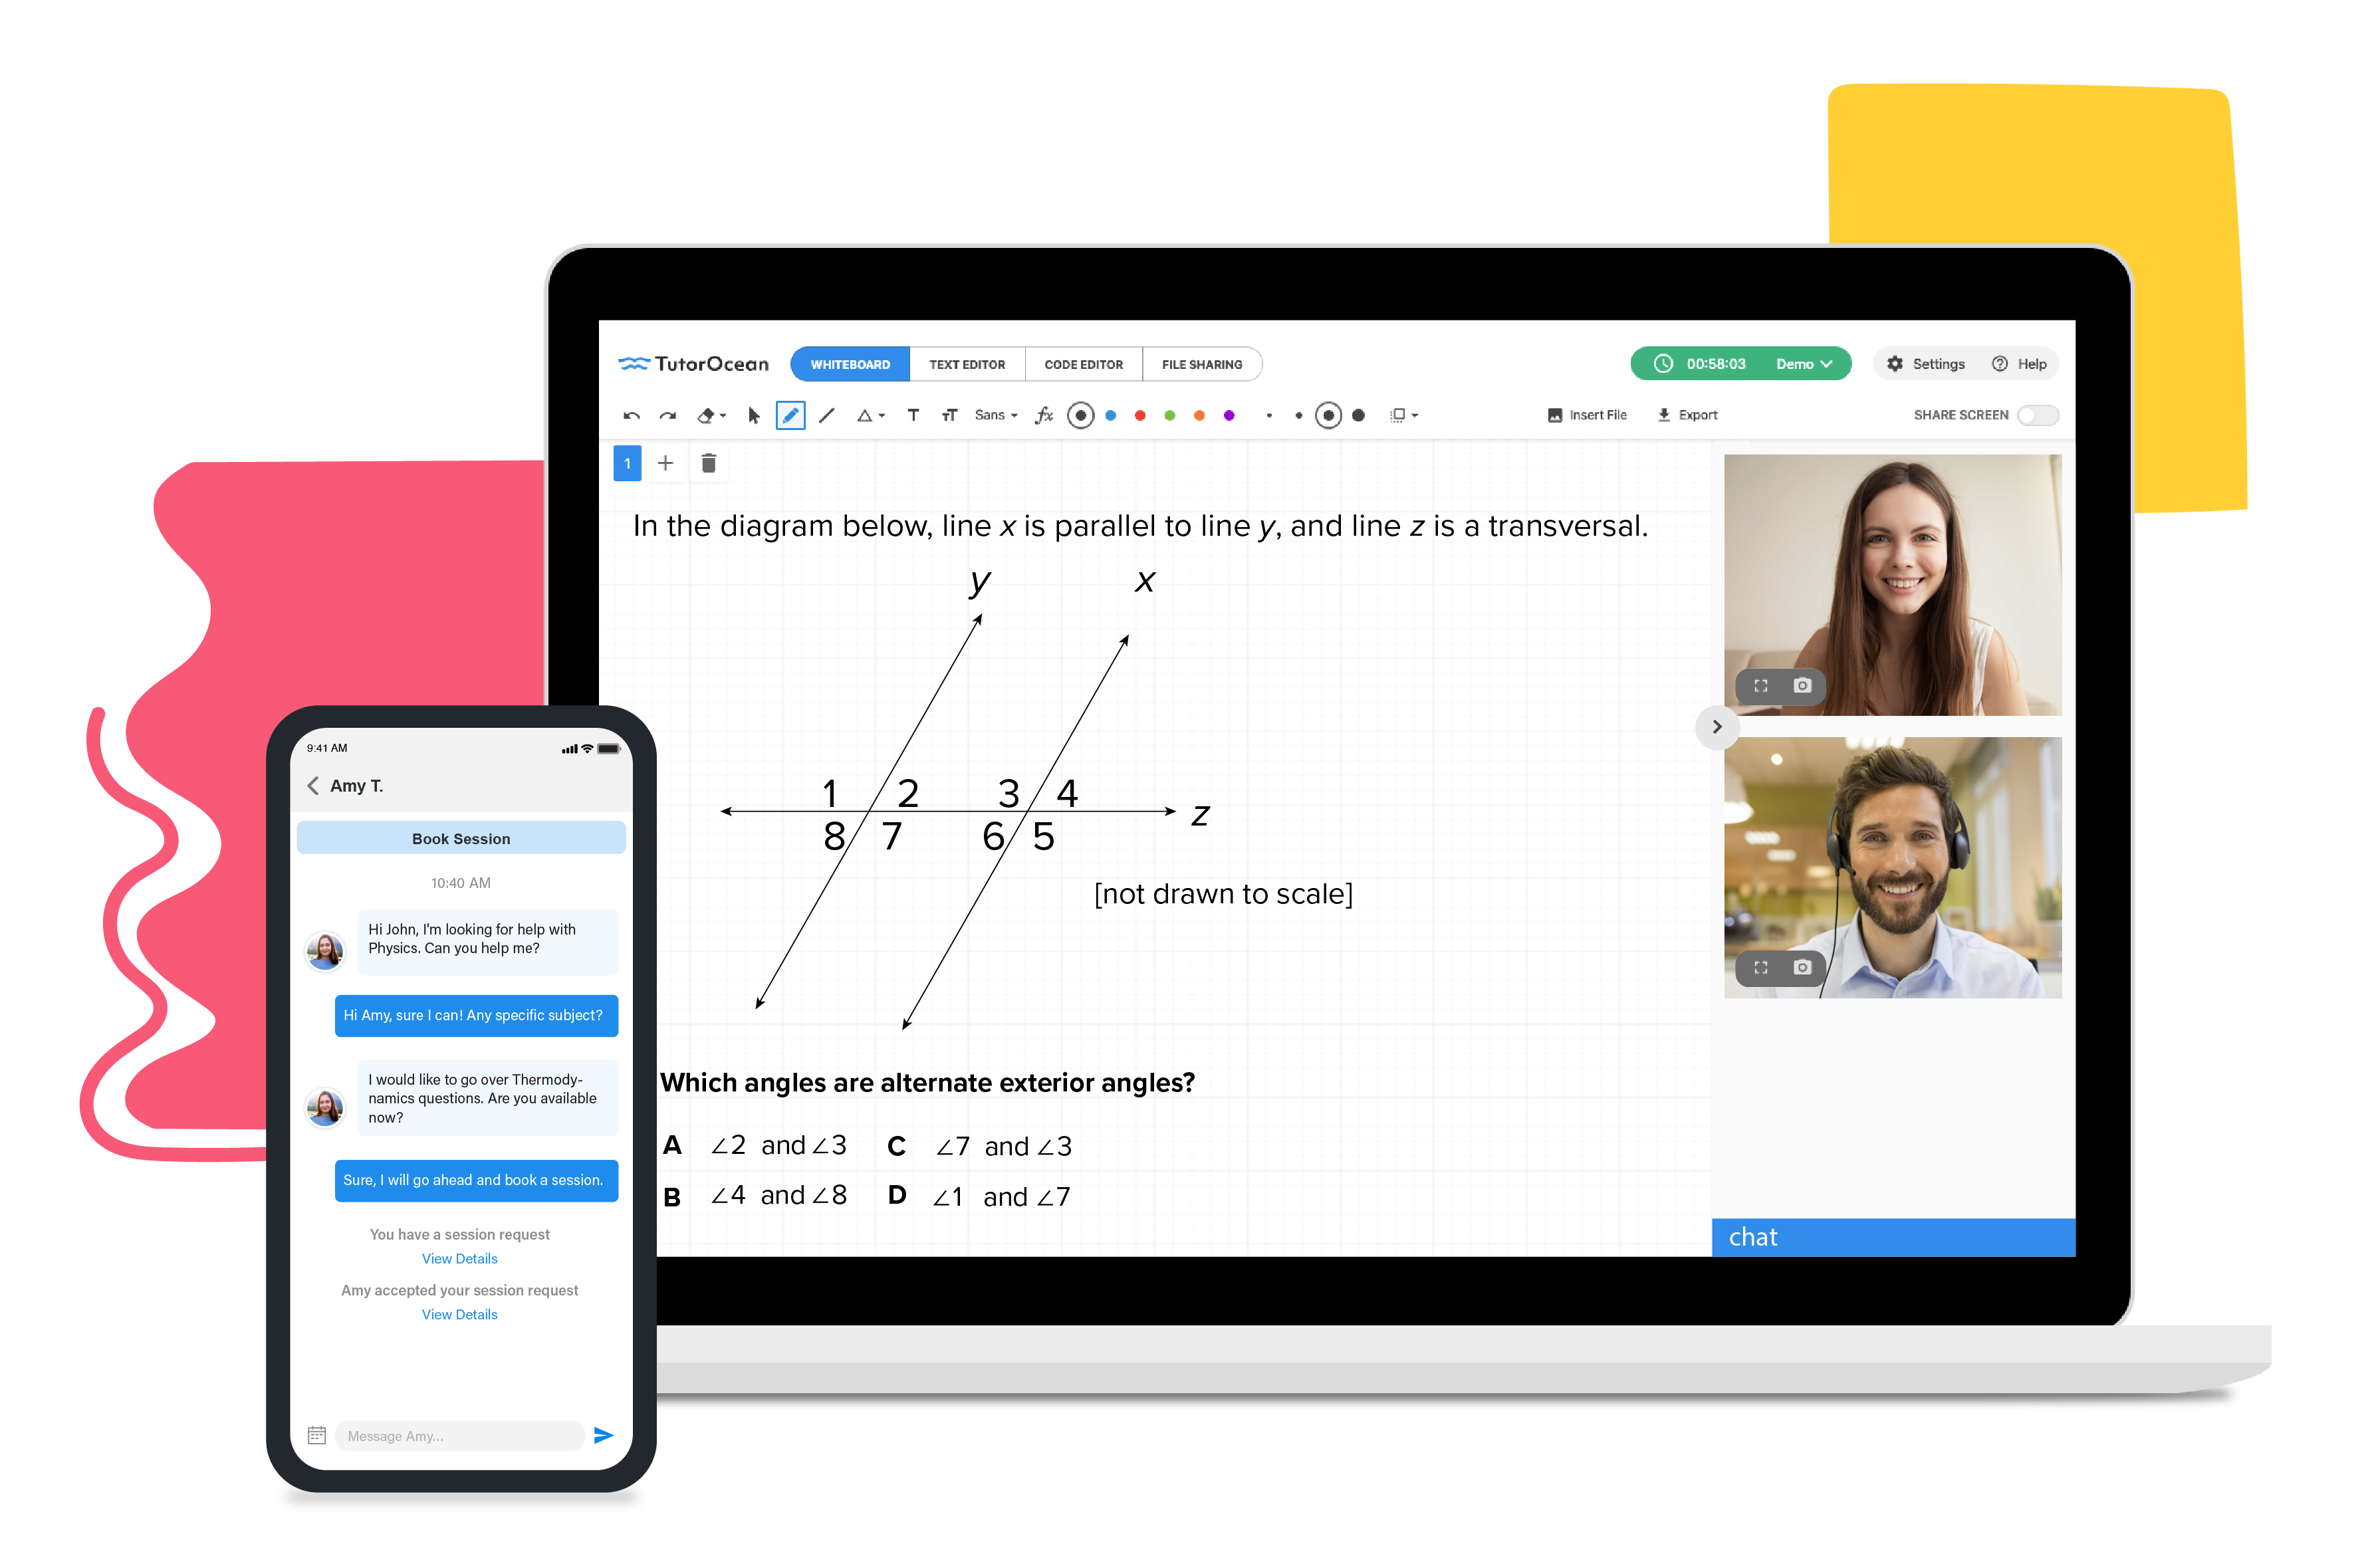 use TutorOcean's online classroom and app to connect with tutors around the world